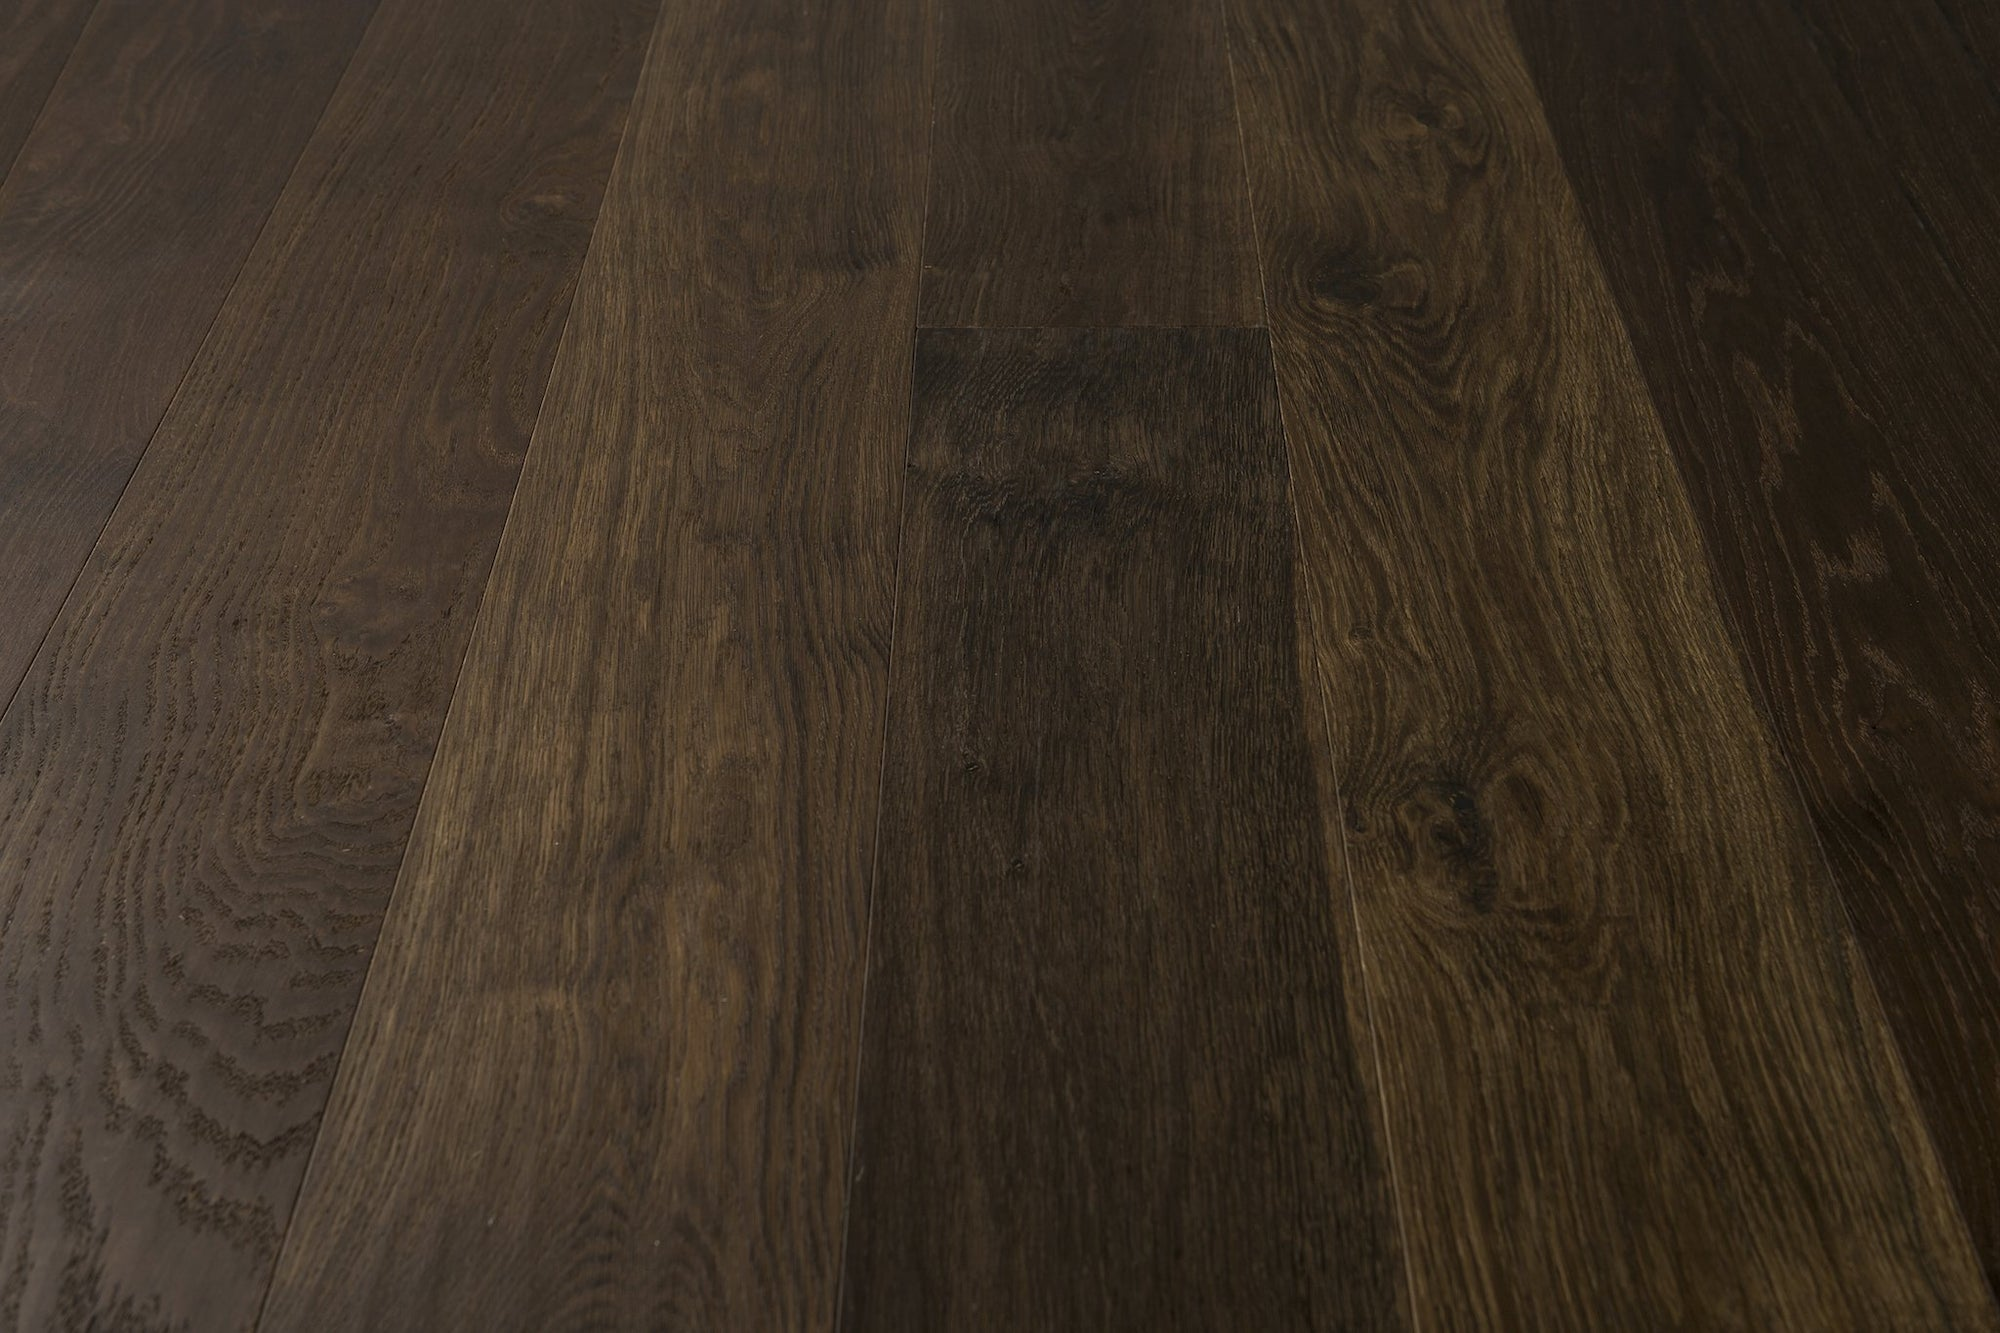 Smoked Oak Handscraped